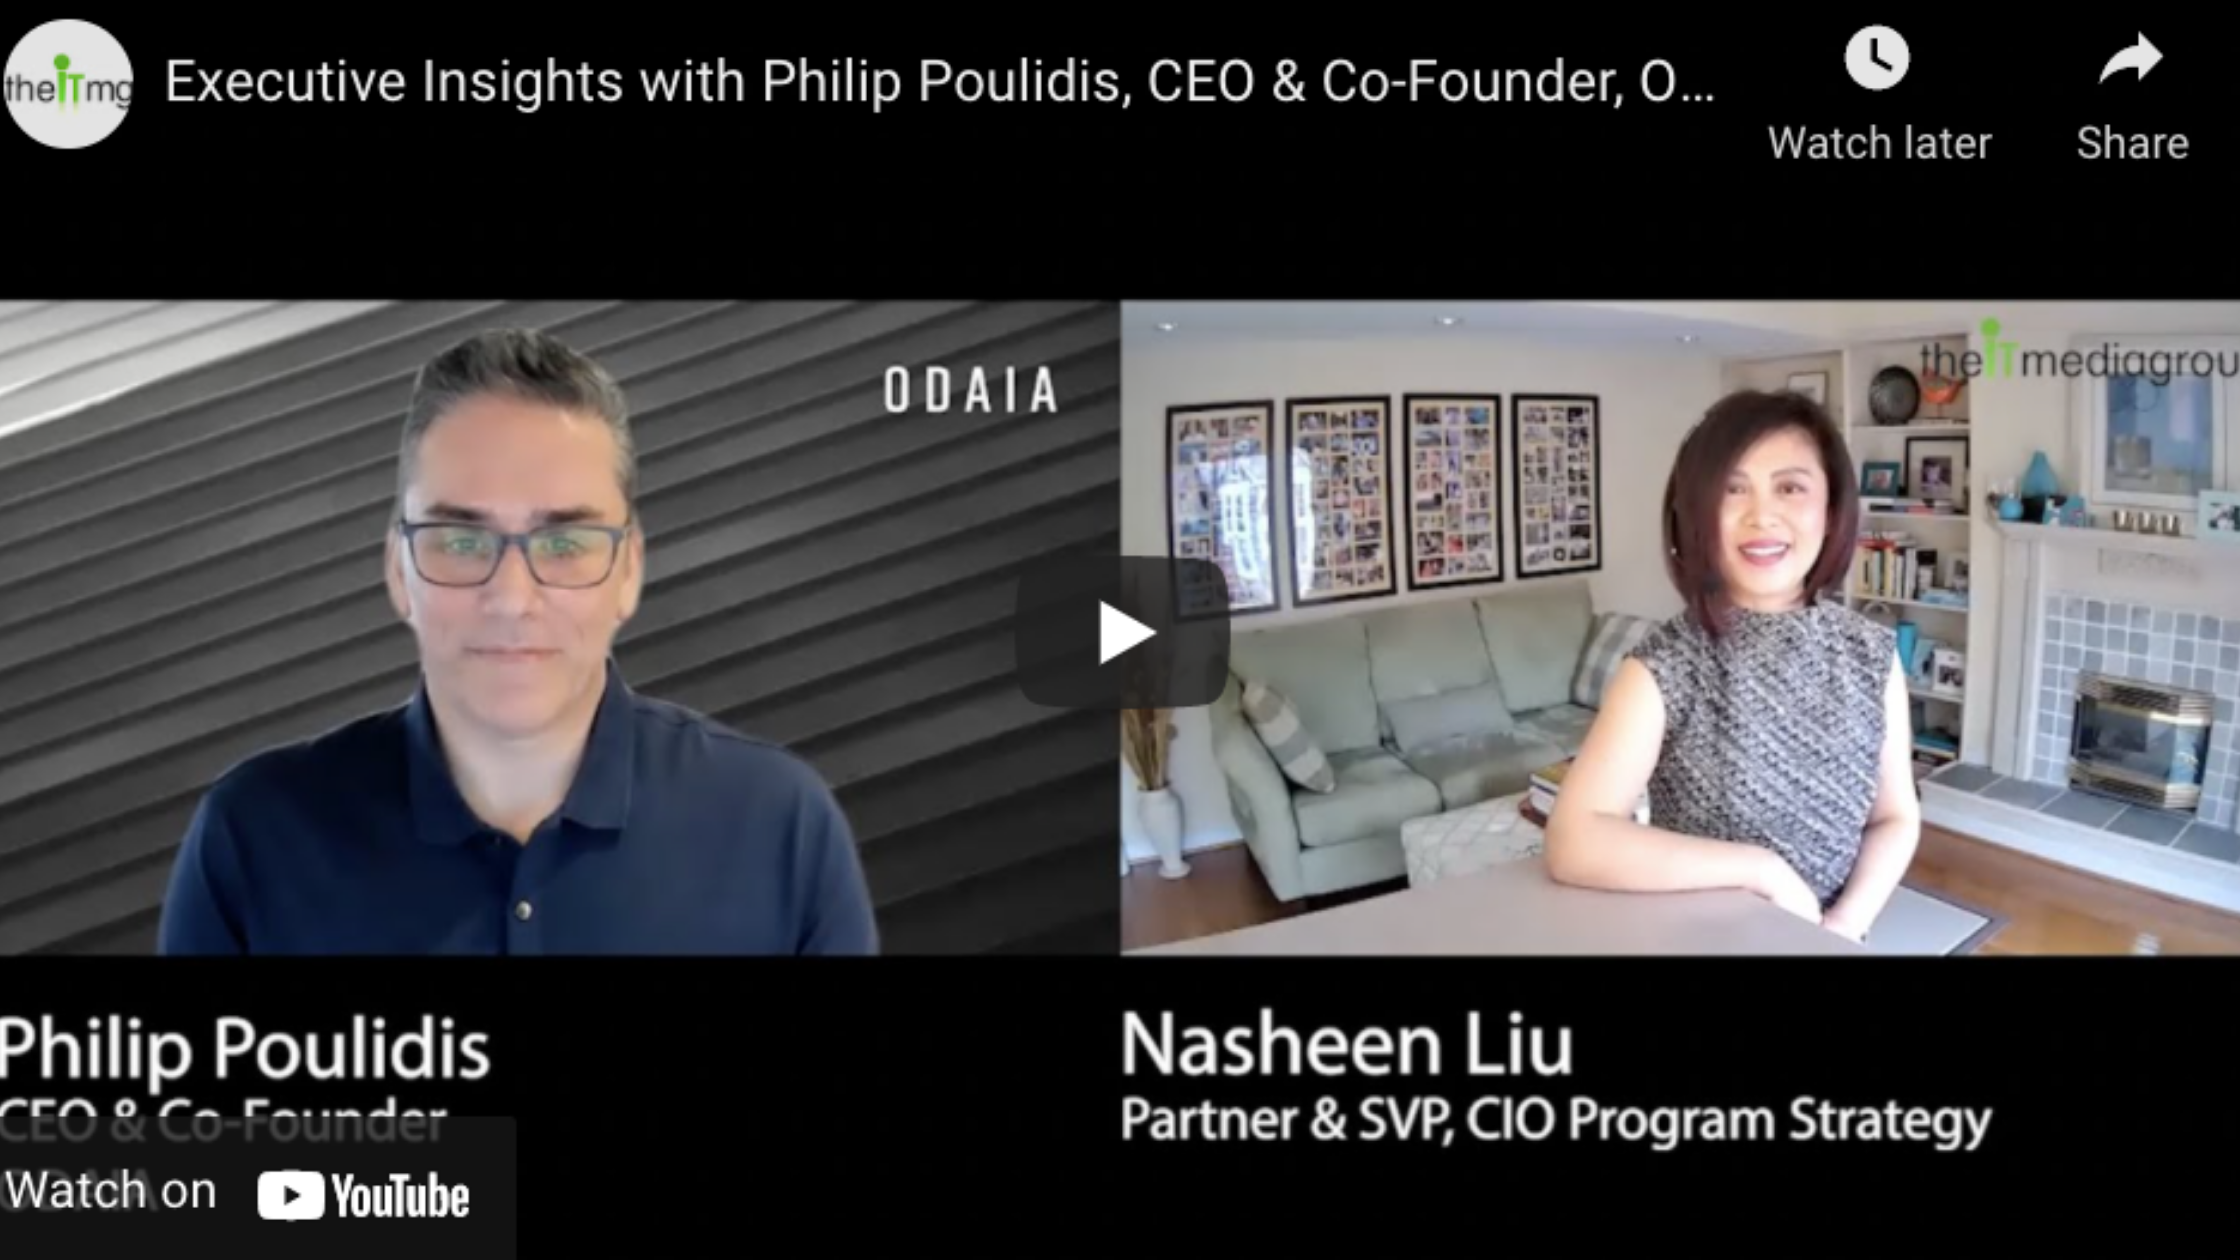 The Digital Pivot in the Pharmaceutical Industry with Philip Poulidis